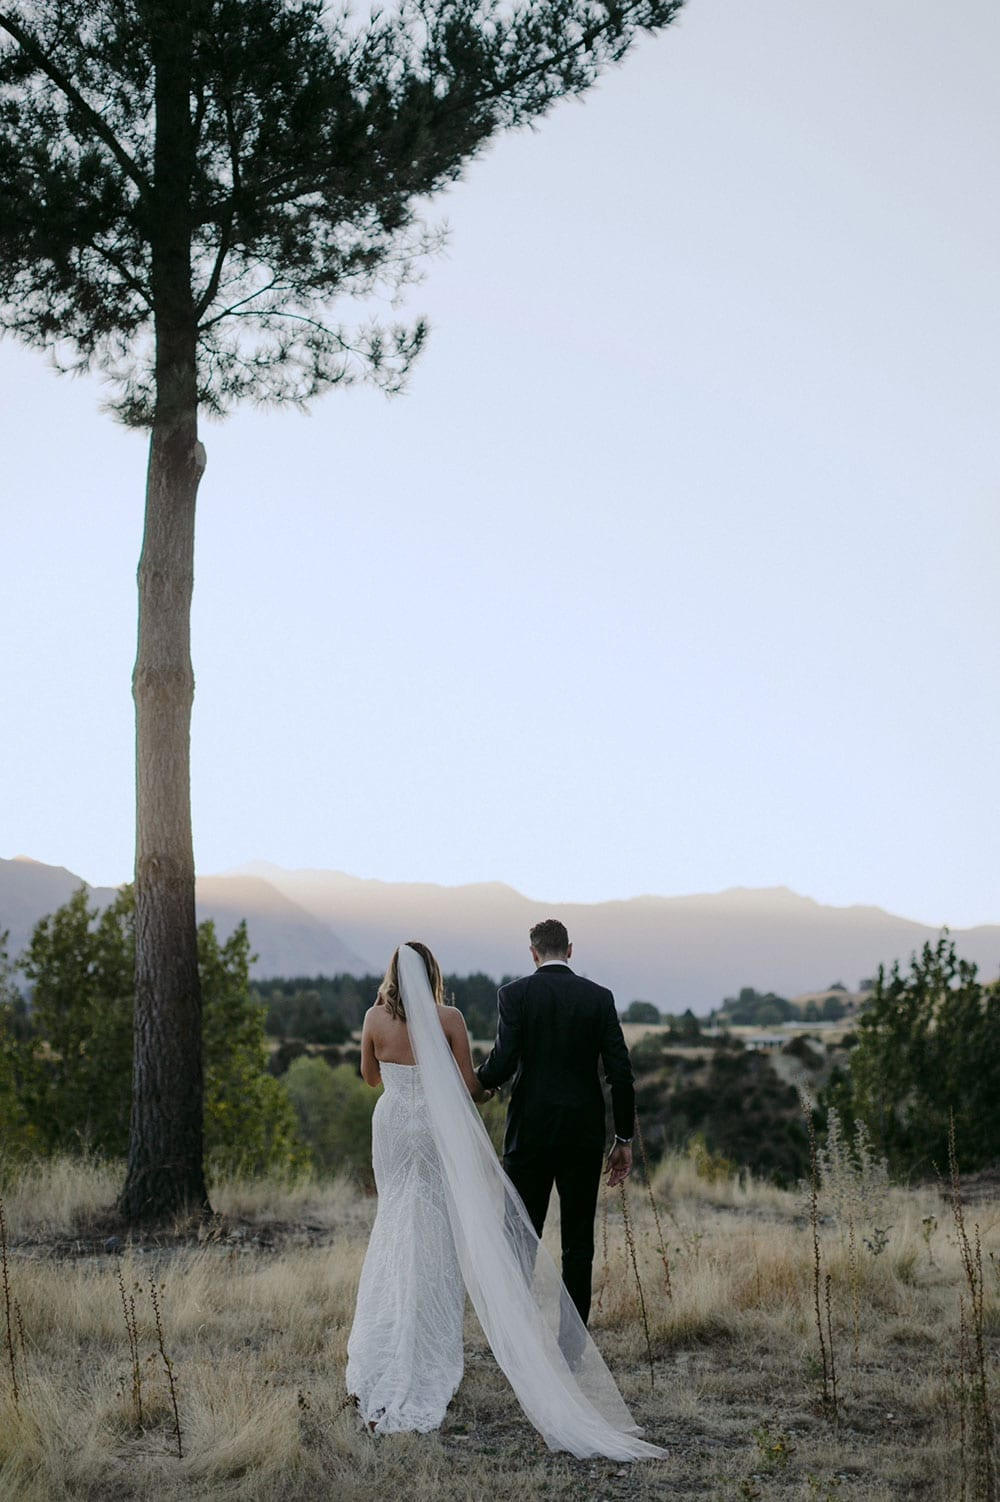 Vinka Design Features Real Weddings - bride in custom made gown, a combination of our Indi wedding dress with added beading appliqued and sewn by hand, over the top of a nude semi sheer base. Walking at sunset with groom